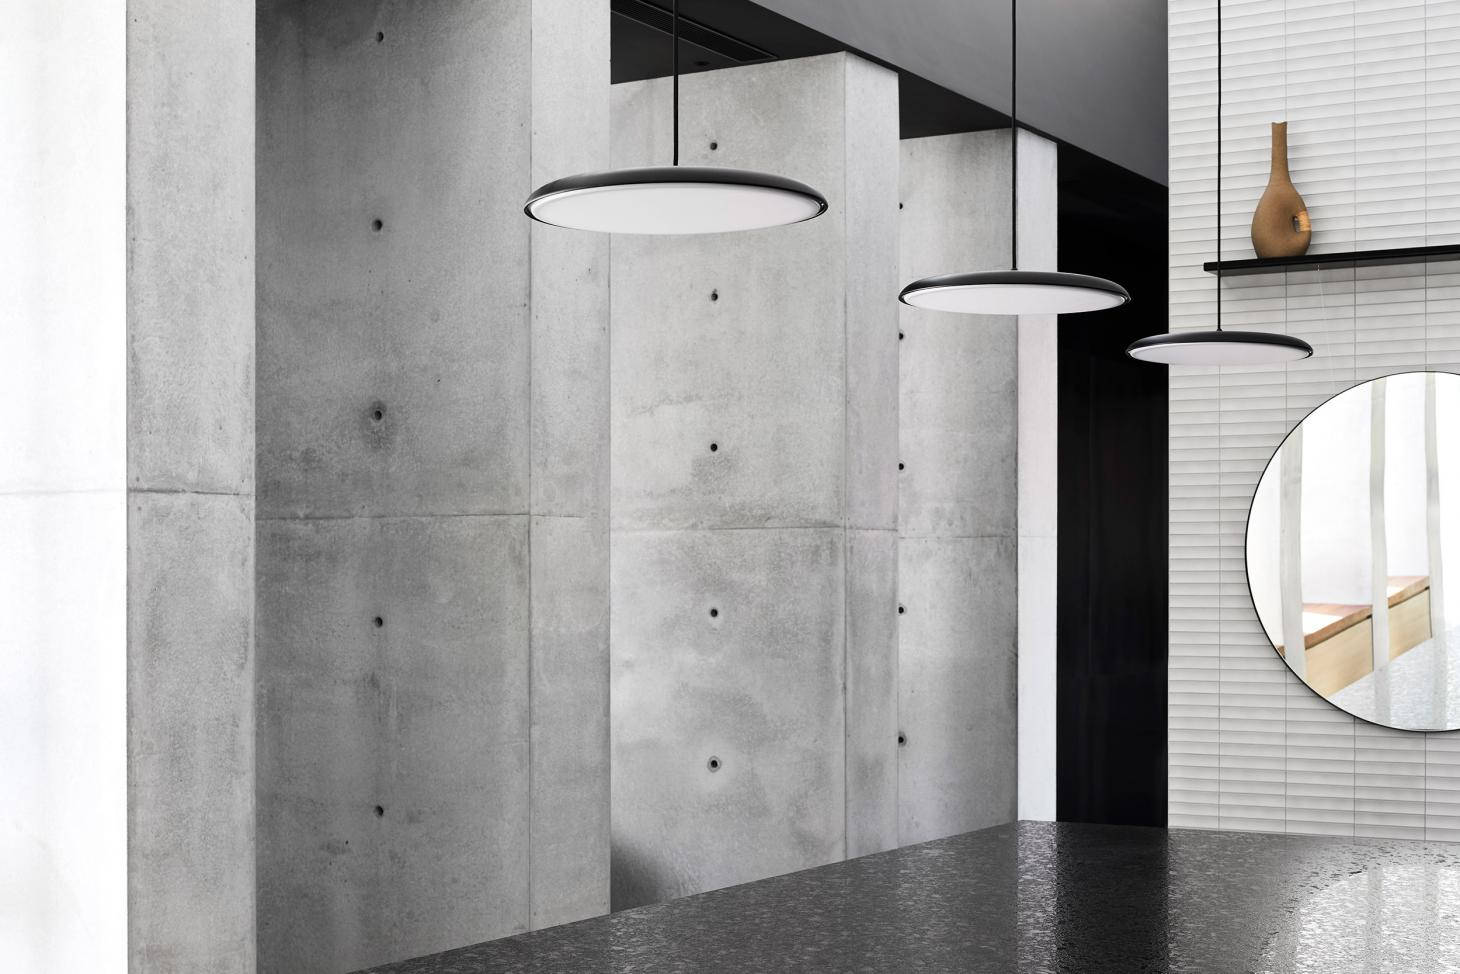 sculptural interior with ceiling lights at Colonnade House by Splinter Society